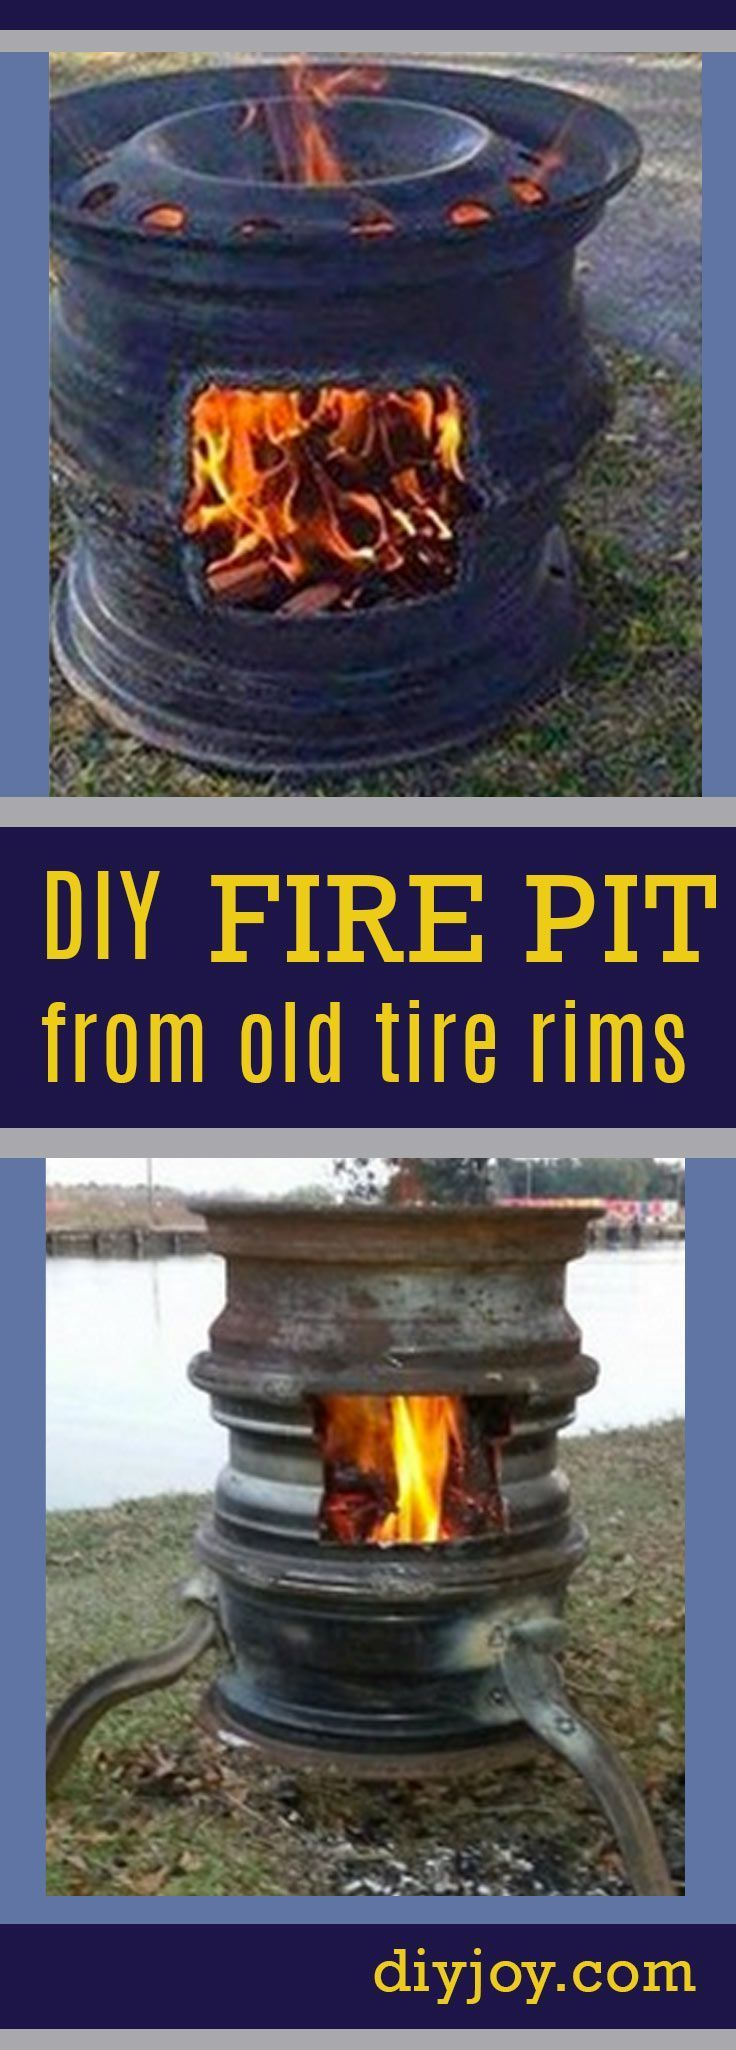 DIY Fire Pit from Old Tire Rims - Fun Outdoor Ideas for the Backyard